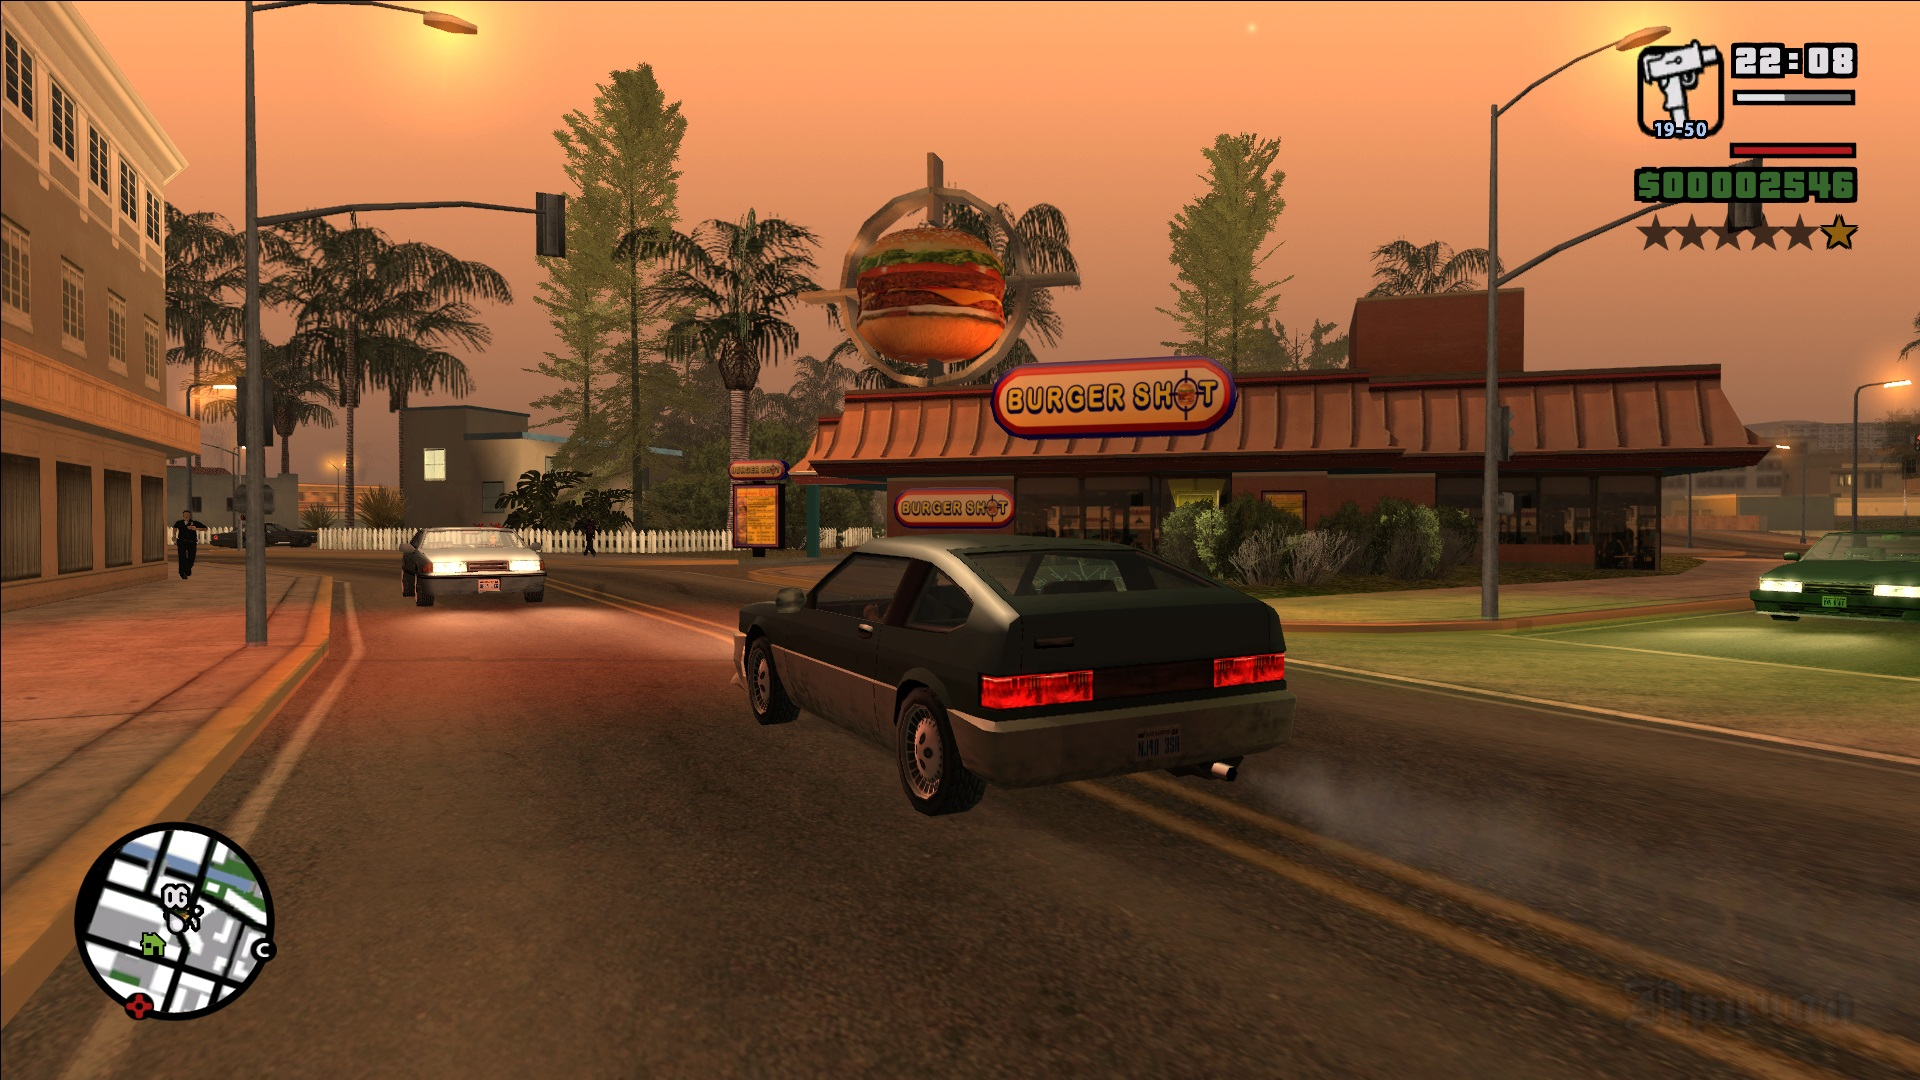 GTA San Andreas (mod - full screen and PS2 sun bloor) - Grand Theft Auto: San Andreas PS2, Моды